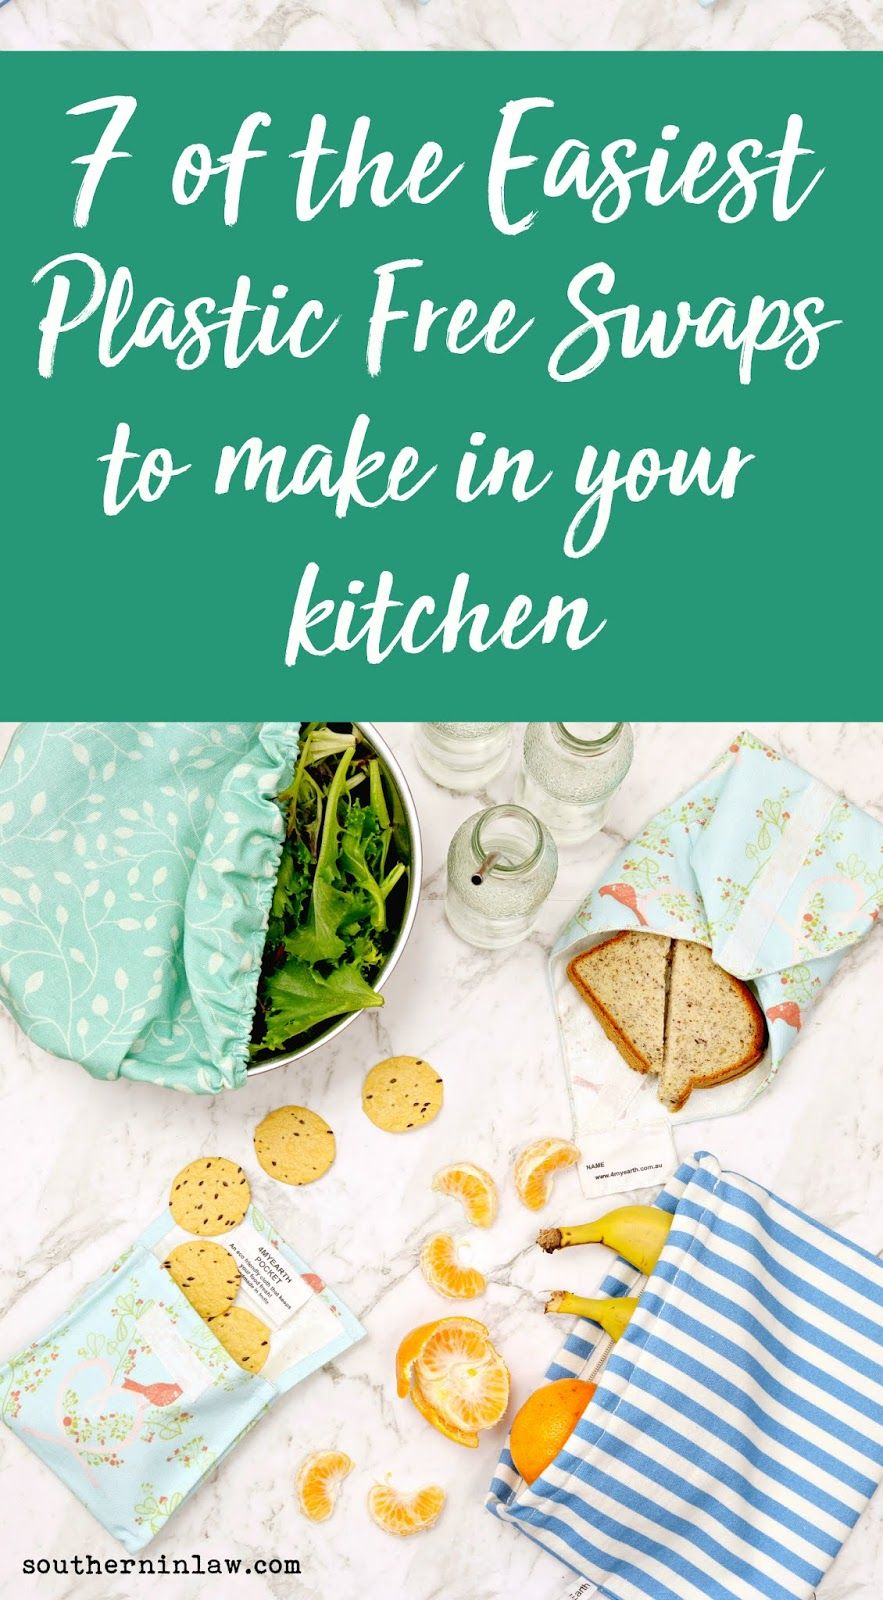 7 Plastic Free Swaps to Make In Your Kitchen | Produce bags, Wraps ...